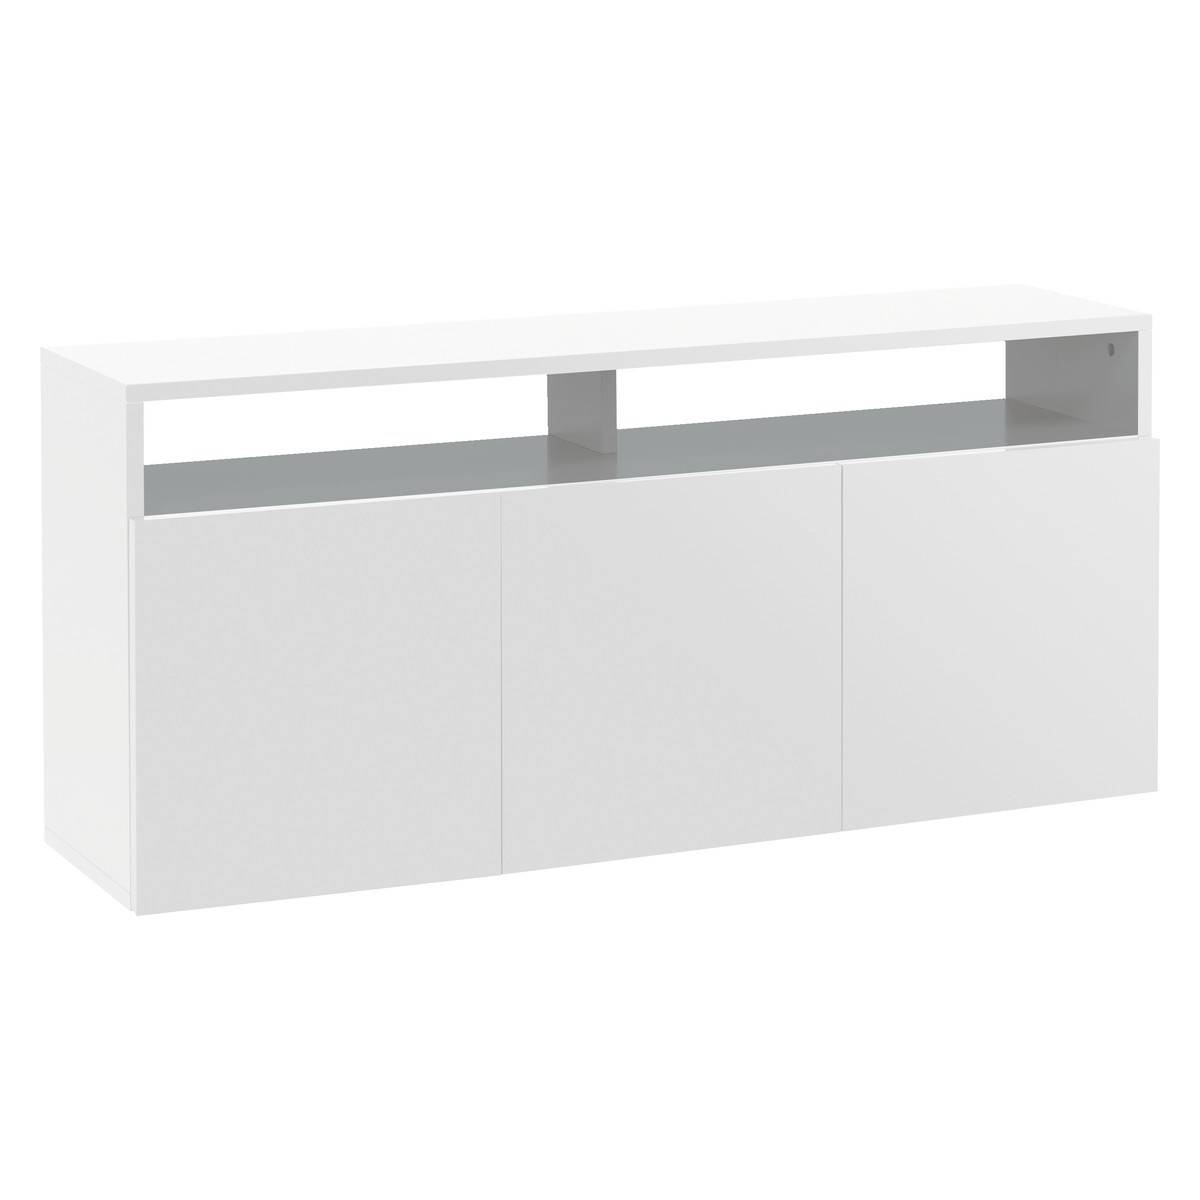 Sideboards, Cupboards & Cabinets In Oak & White – Habitat Uk With White High Gloss Sideboard (View 18 of 20)